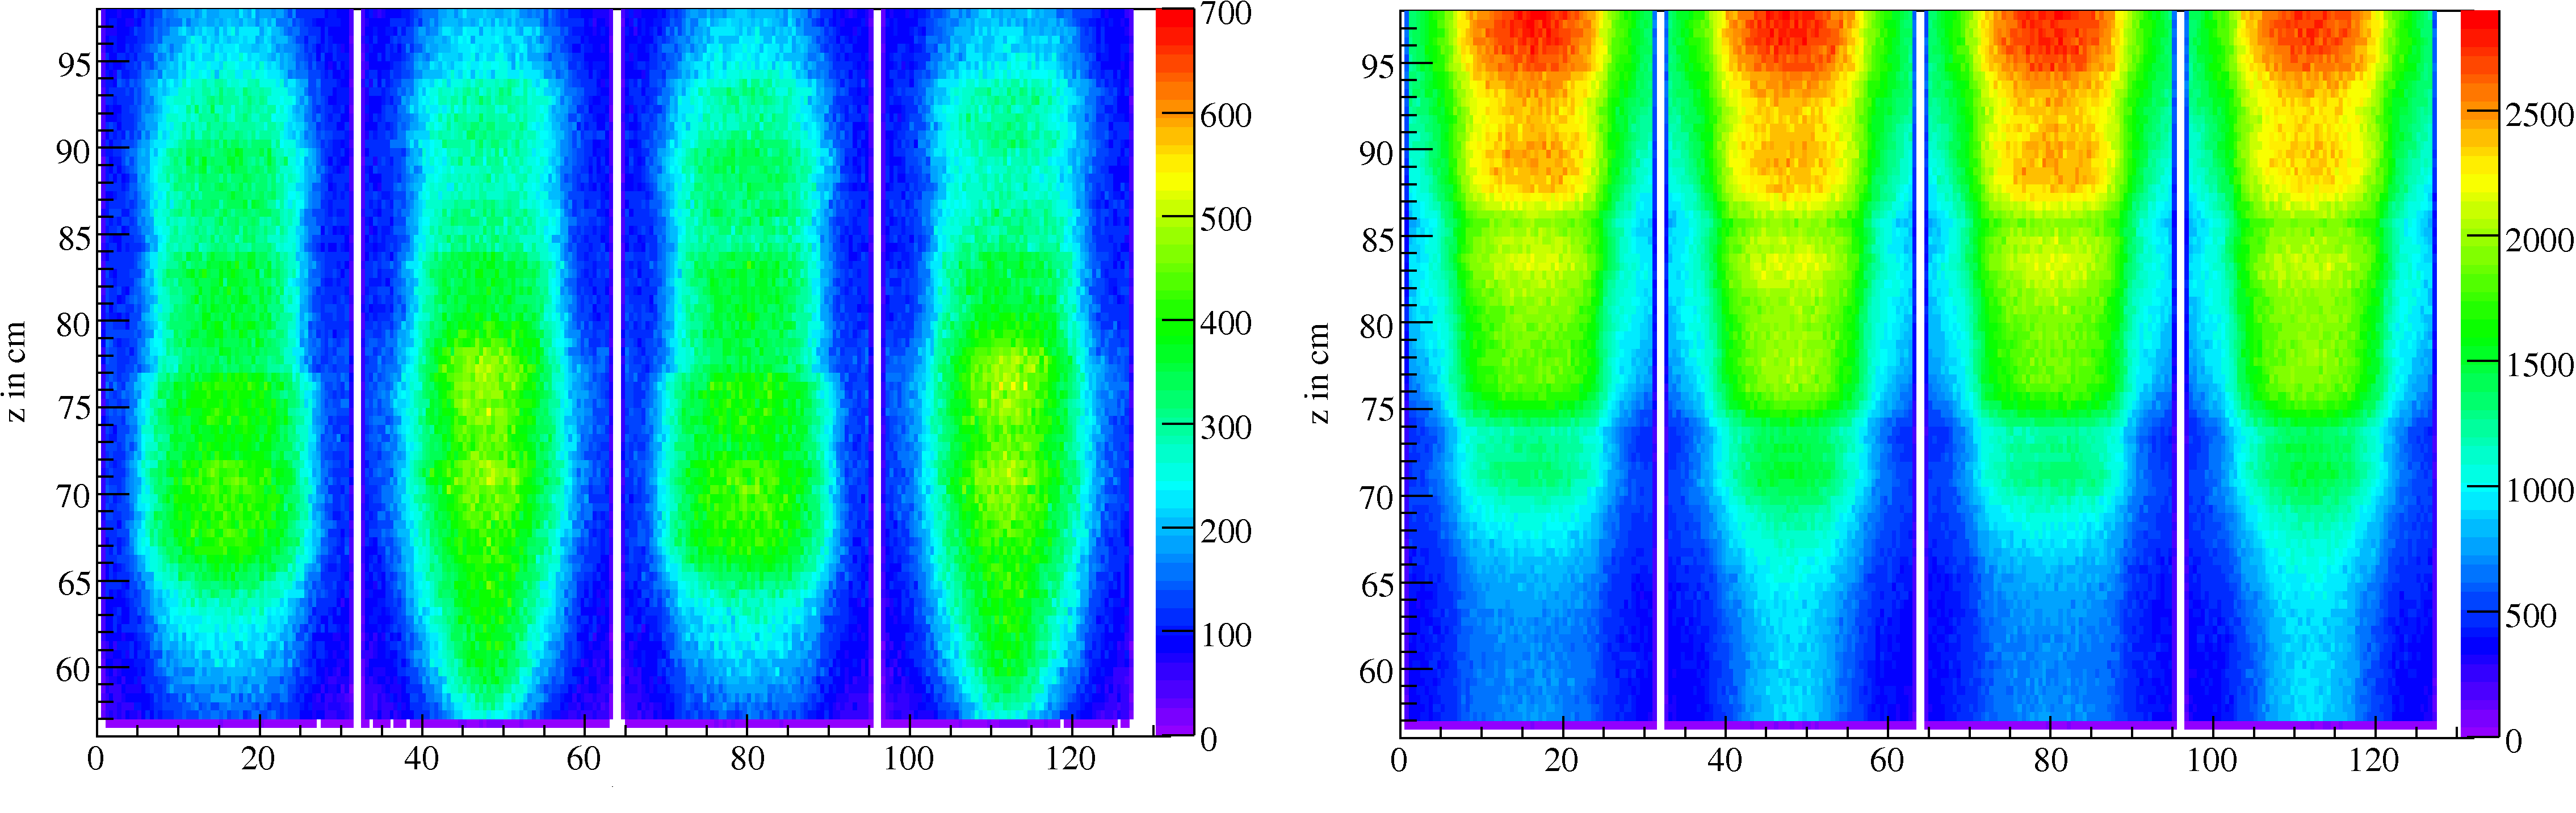 7.2 Photon Irradiation Figure 7.13 Number of particles passing through the measurement surface in the same geometry as in figure 7.11 (left: electrons, right: photons).